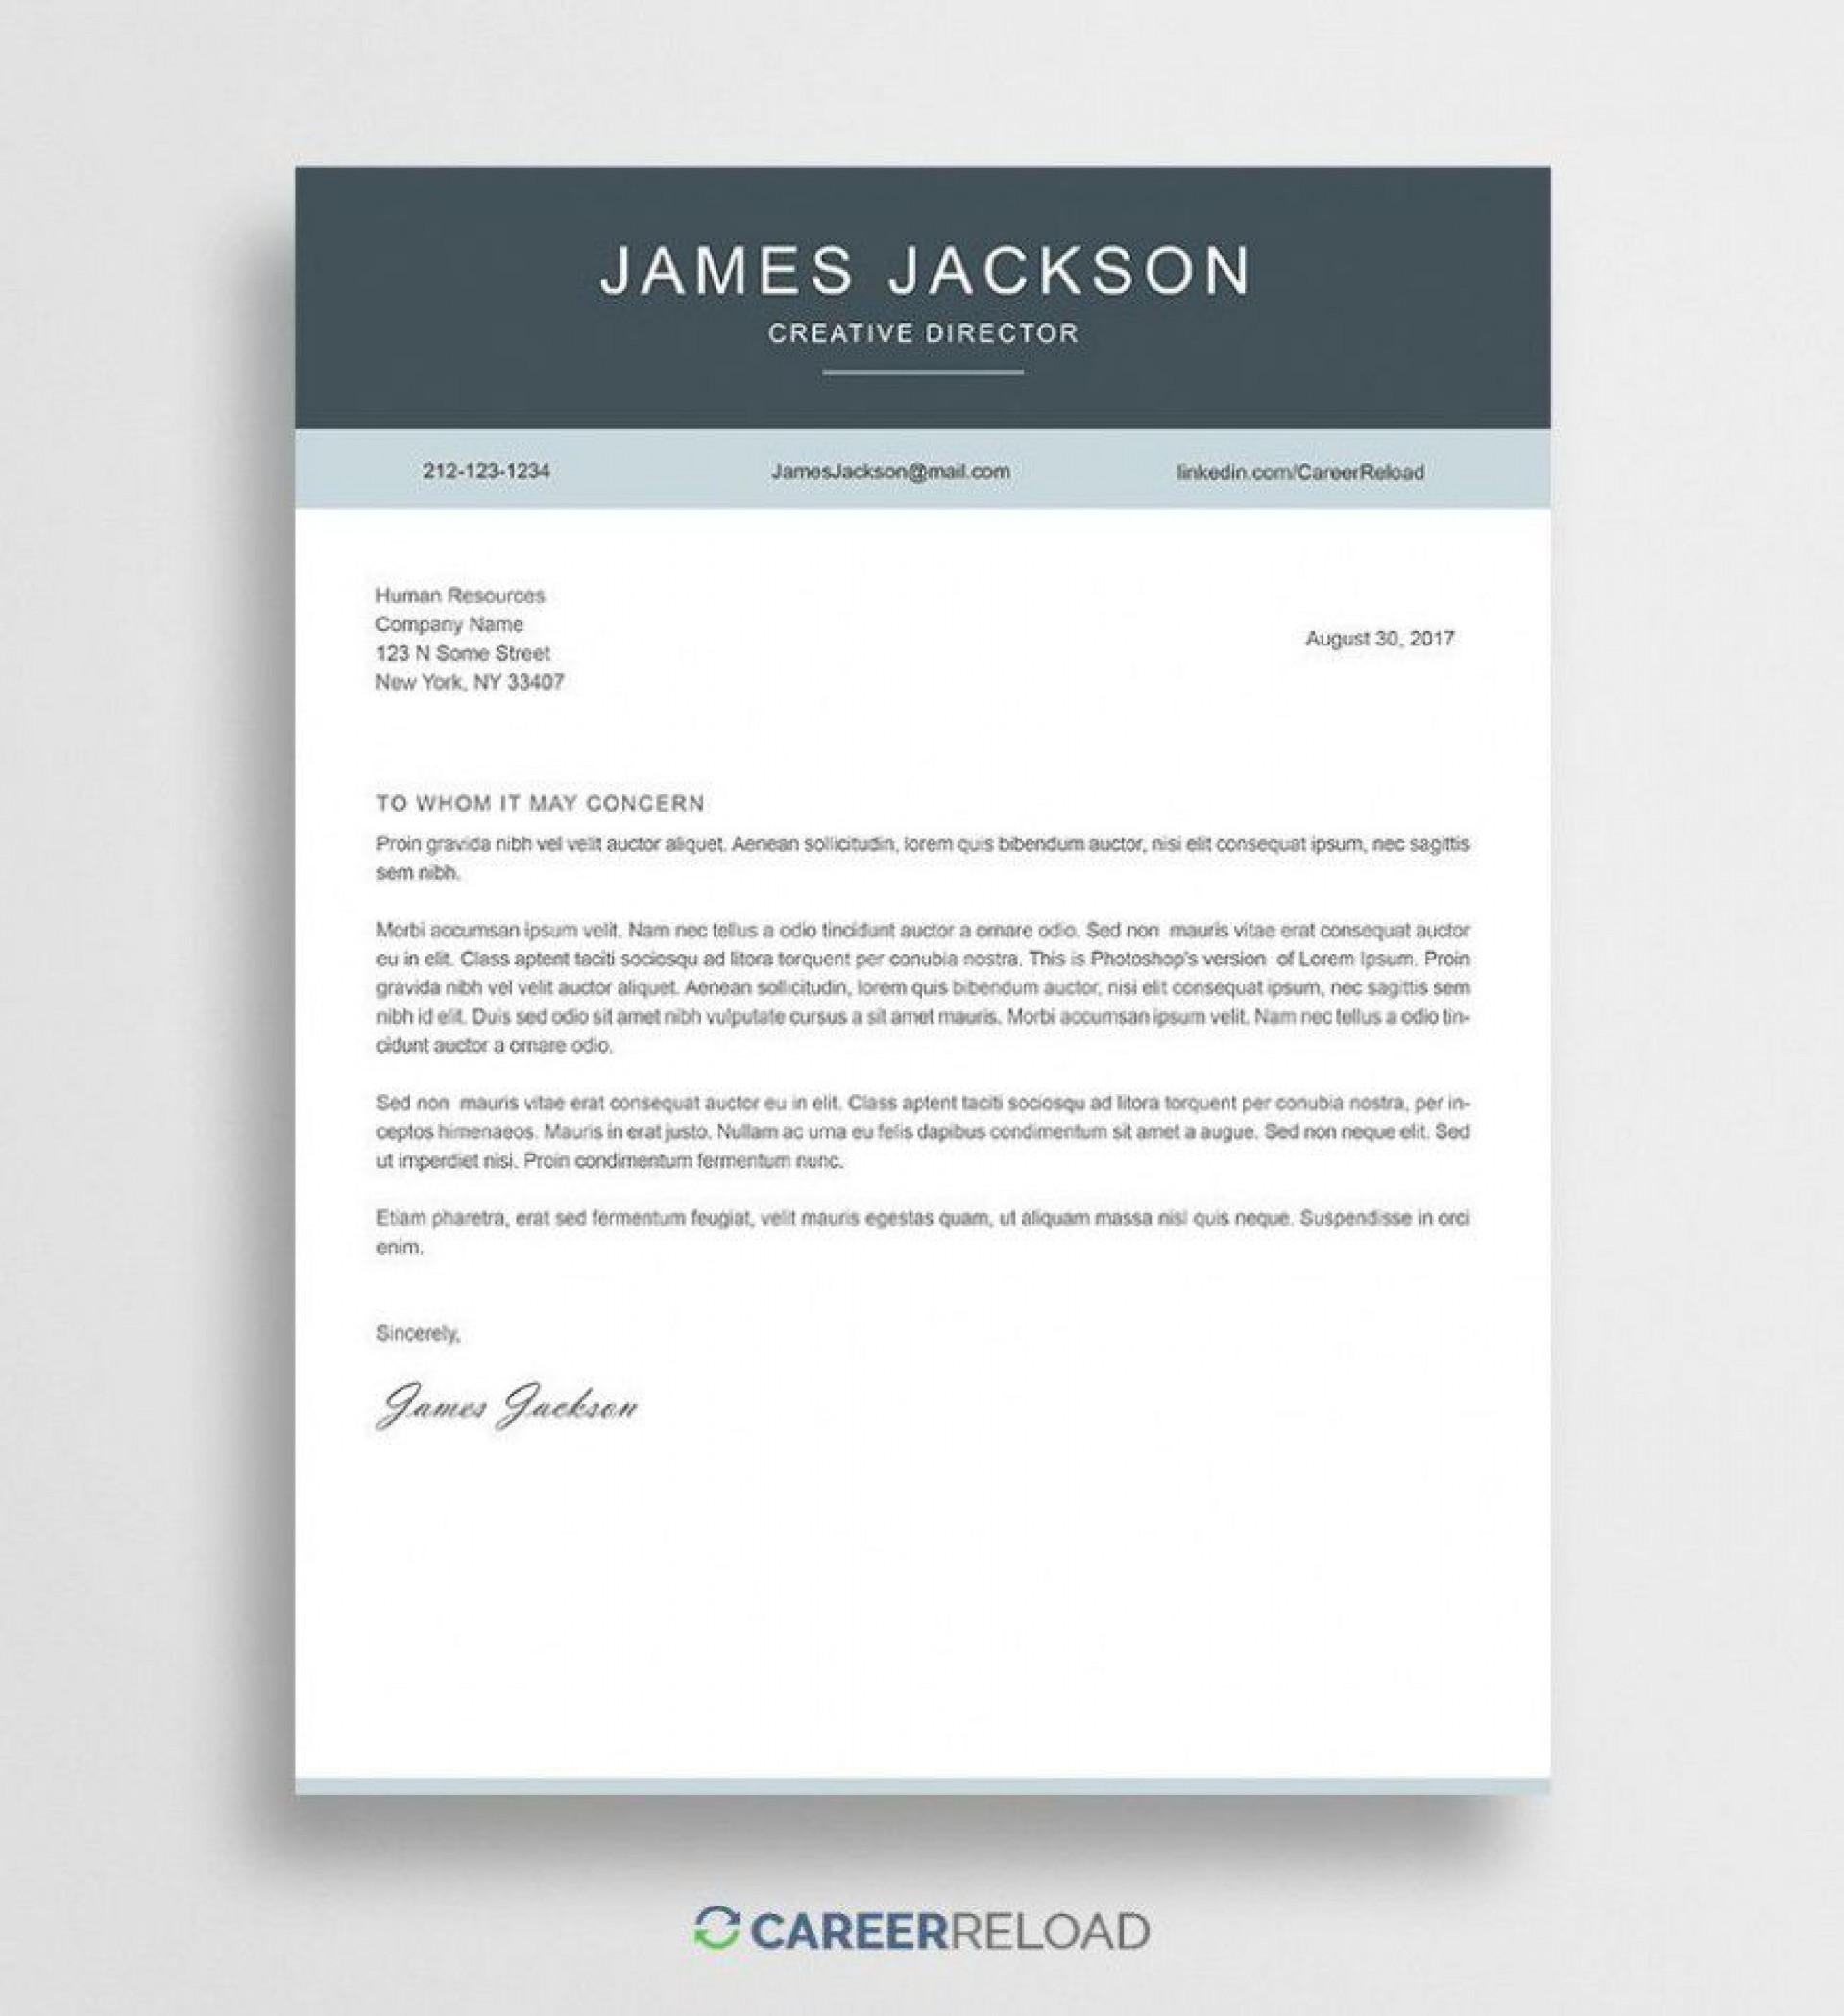 000 Outstanding Free Download Cover Letter Sample High Resolution  For Fresher Pdf Template1920